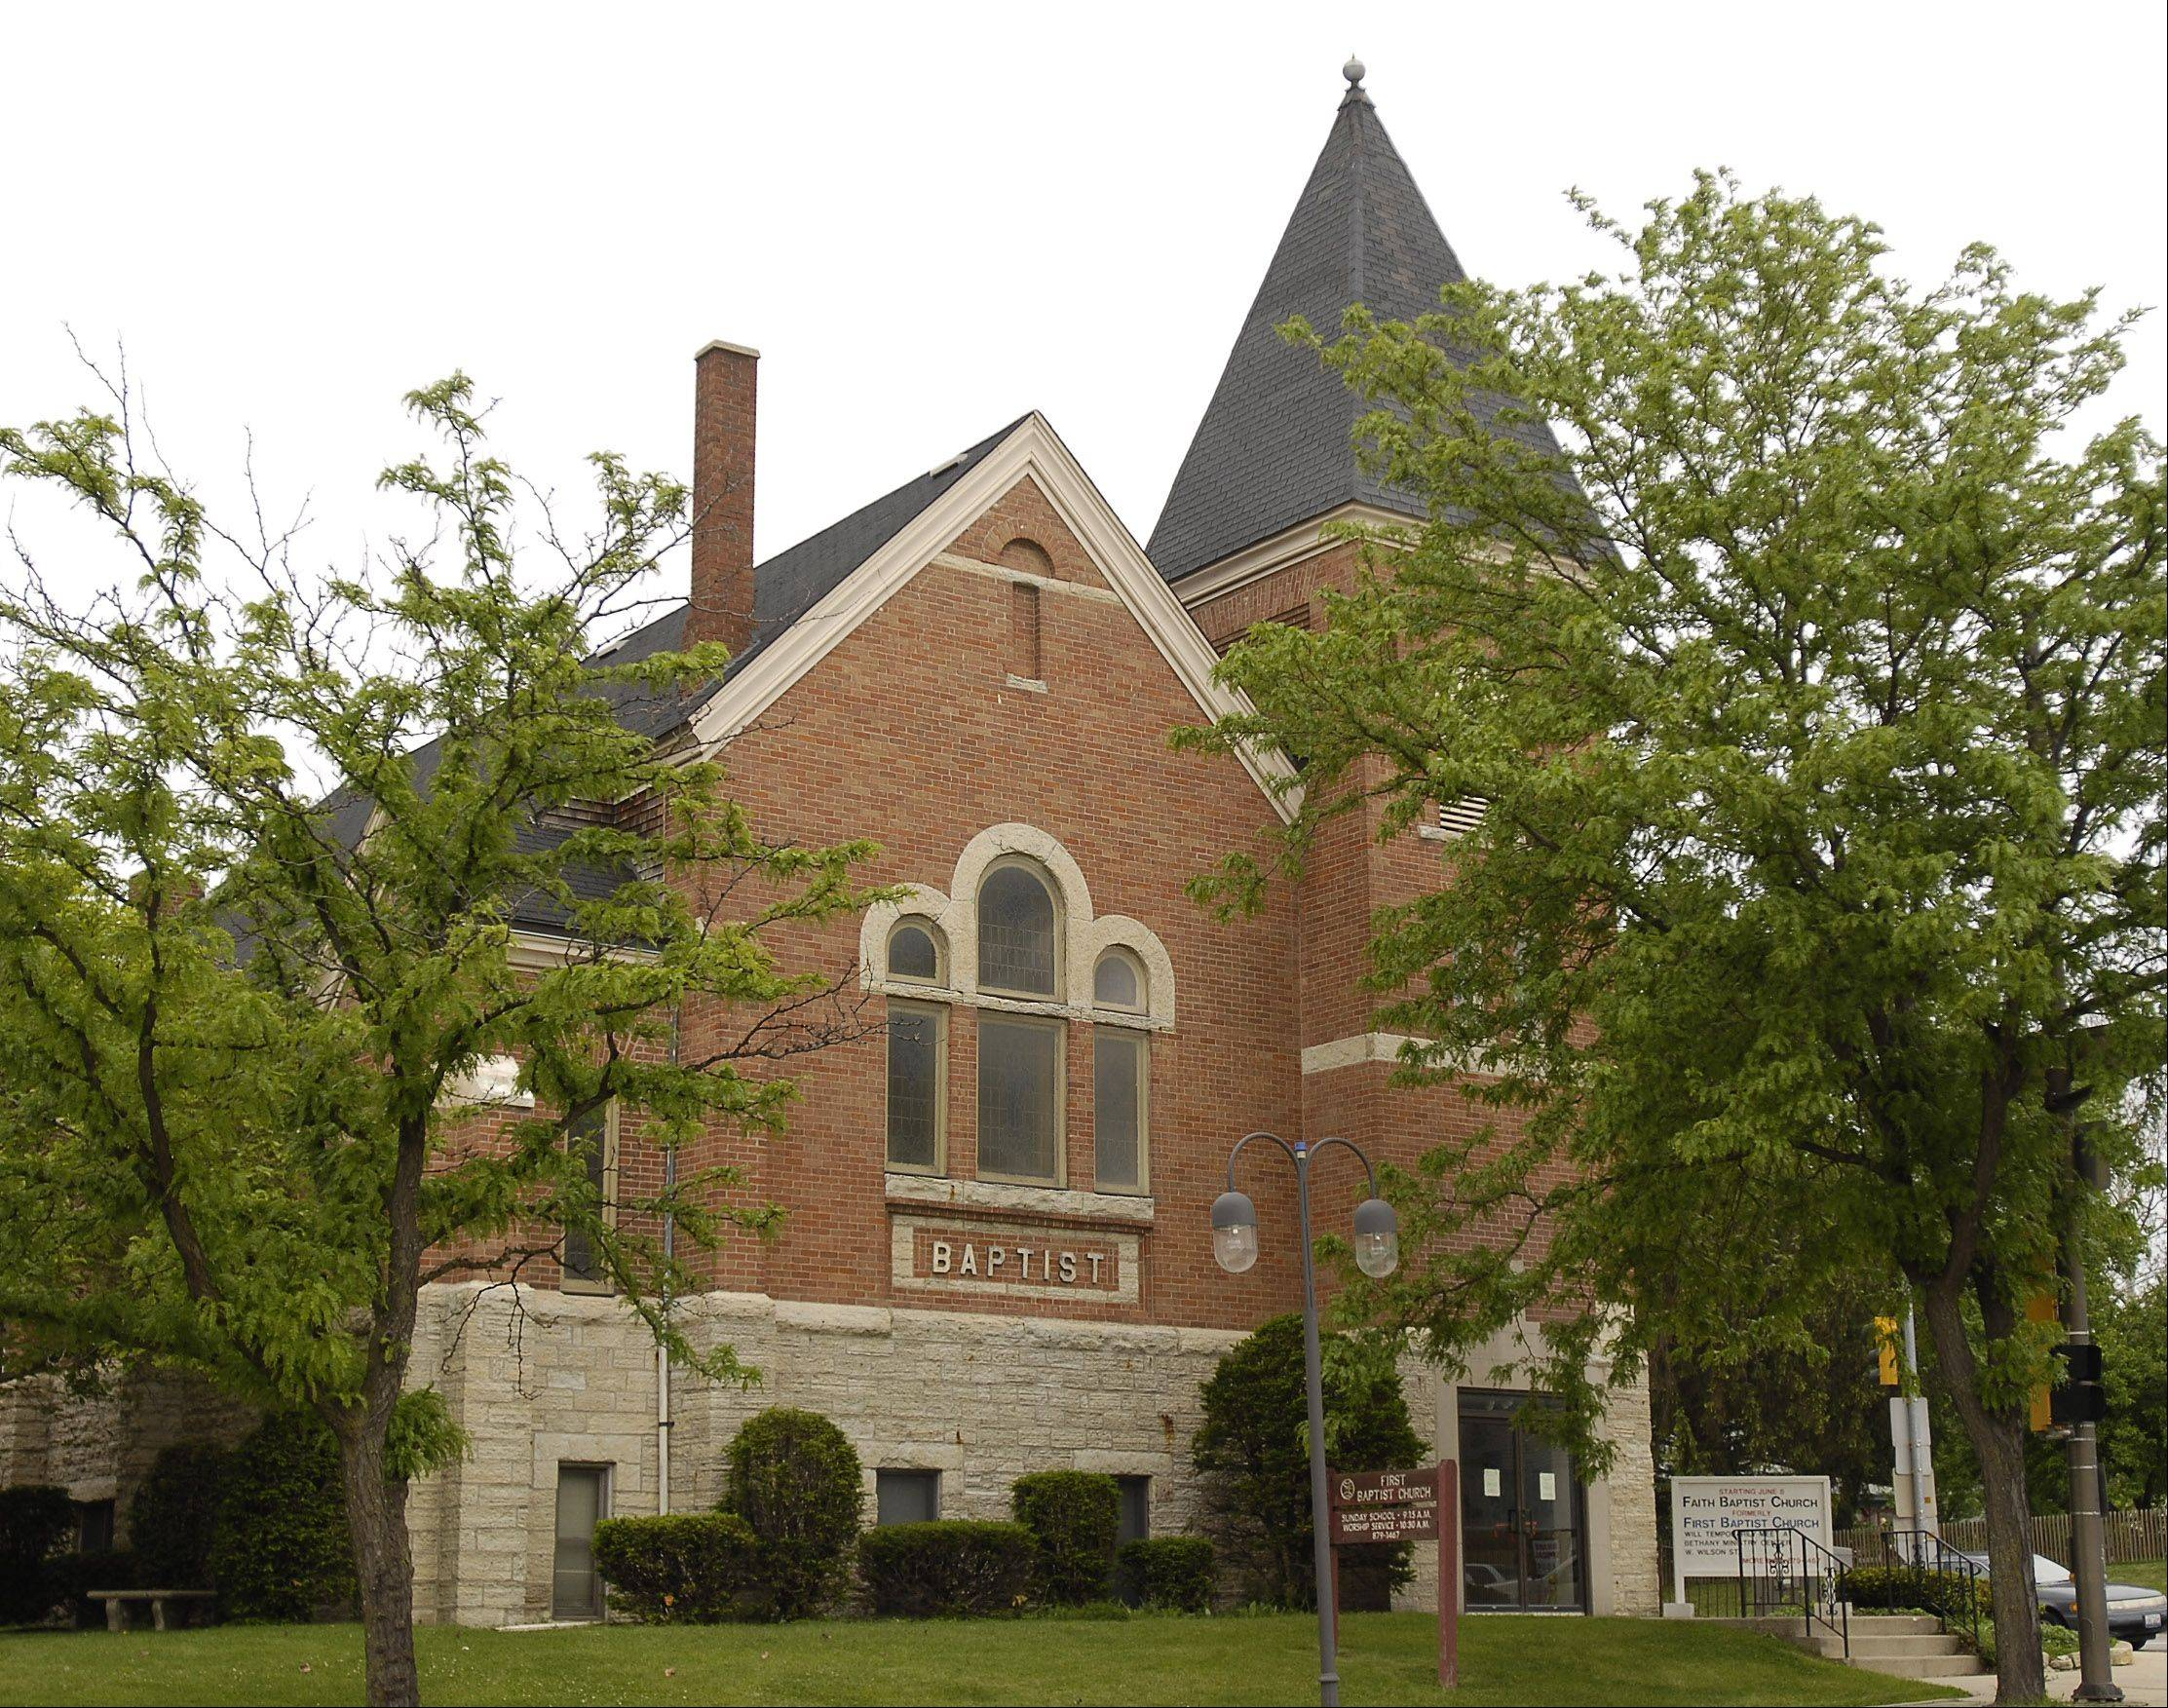 The city owns the property of former First Baptist Church of Batavia at 15 N. Washington St., and tonight will debate what to do with the buildings and the property during a city services committee meeting.